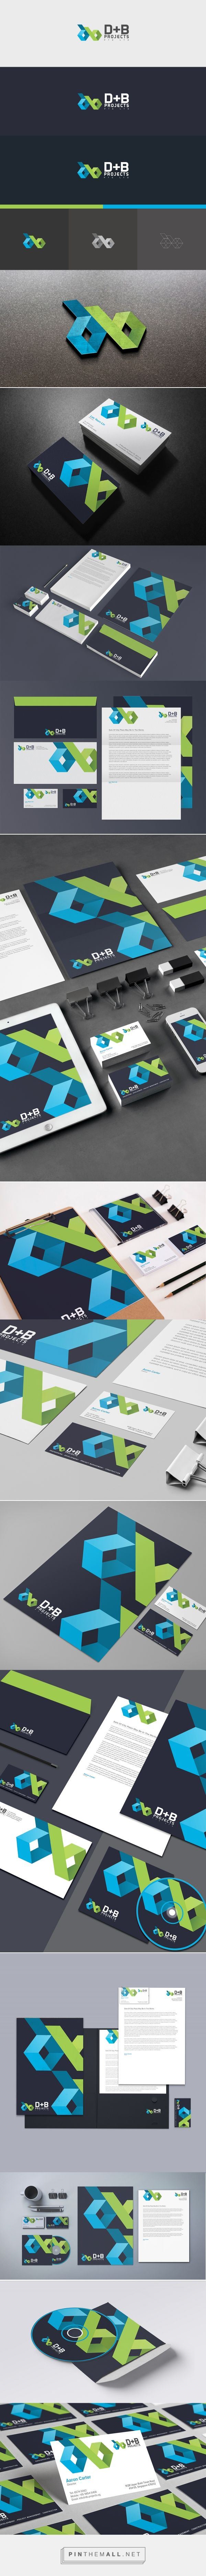 B+D Projects branding design by Rayz Ong